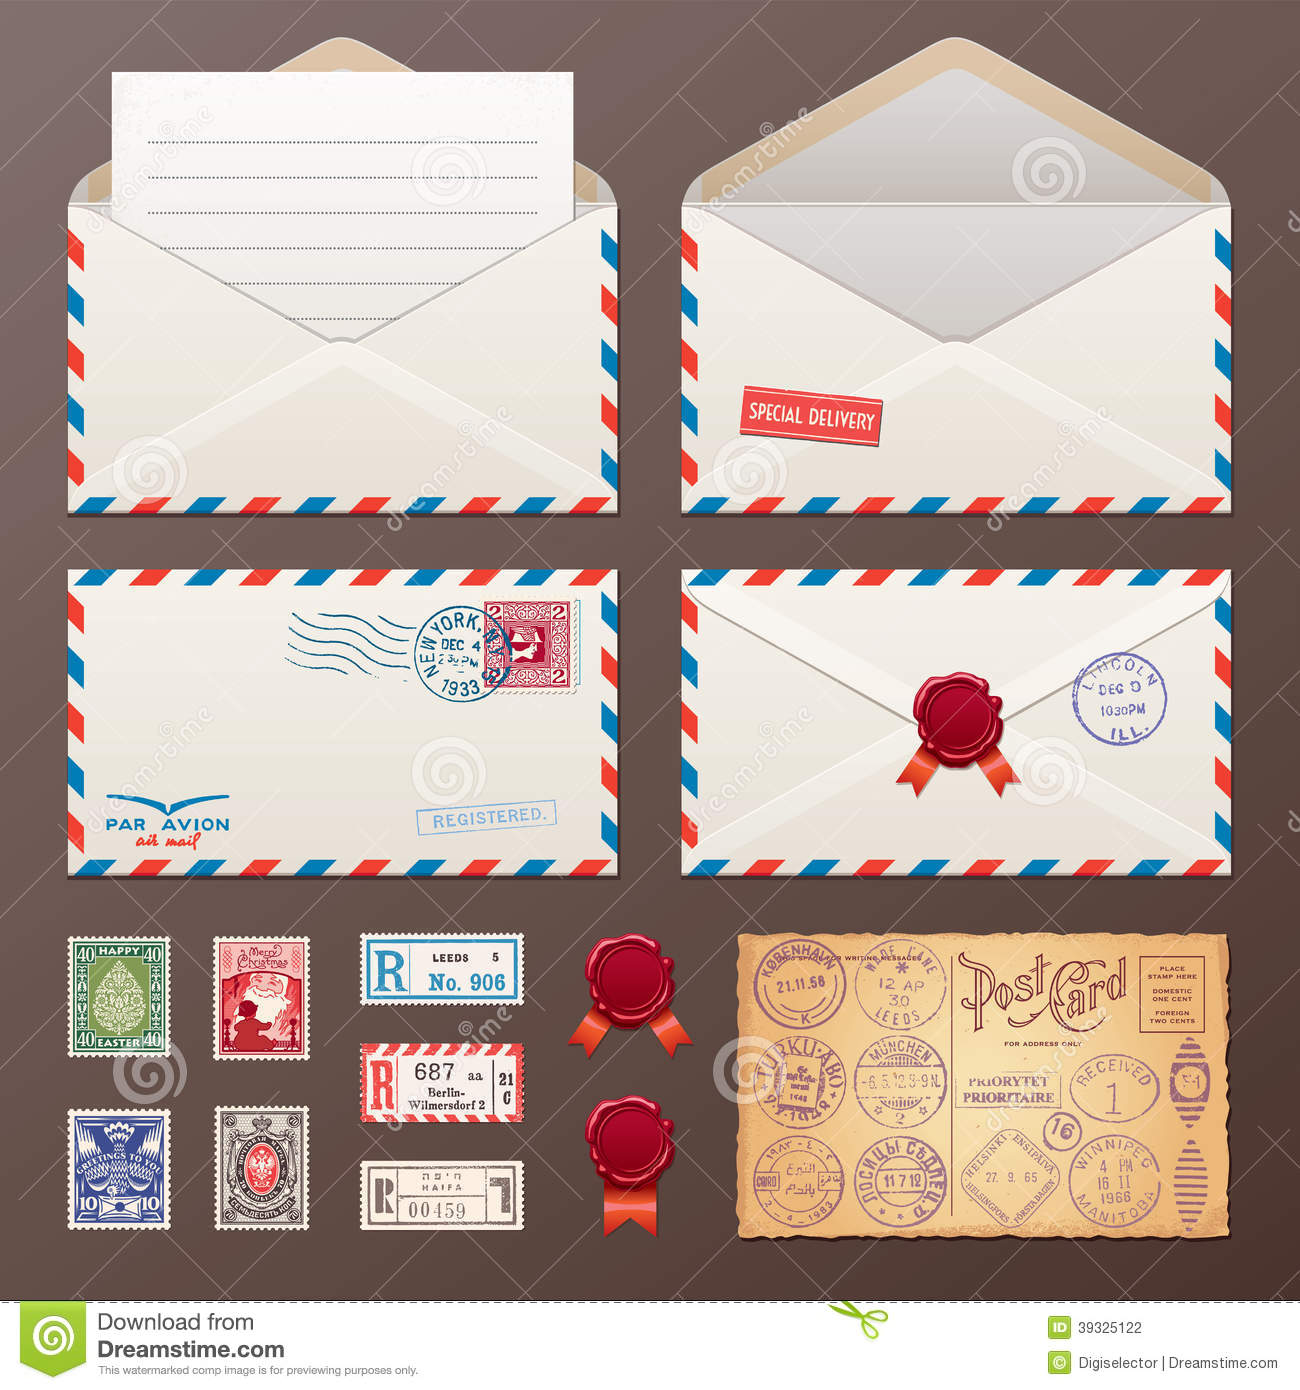 ... Envelope, Stickers, Stamps, Postcard Stock Vector - Image: 39325122